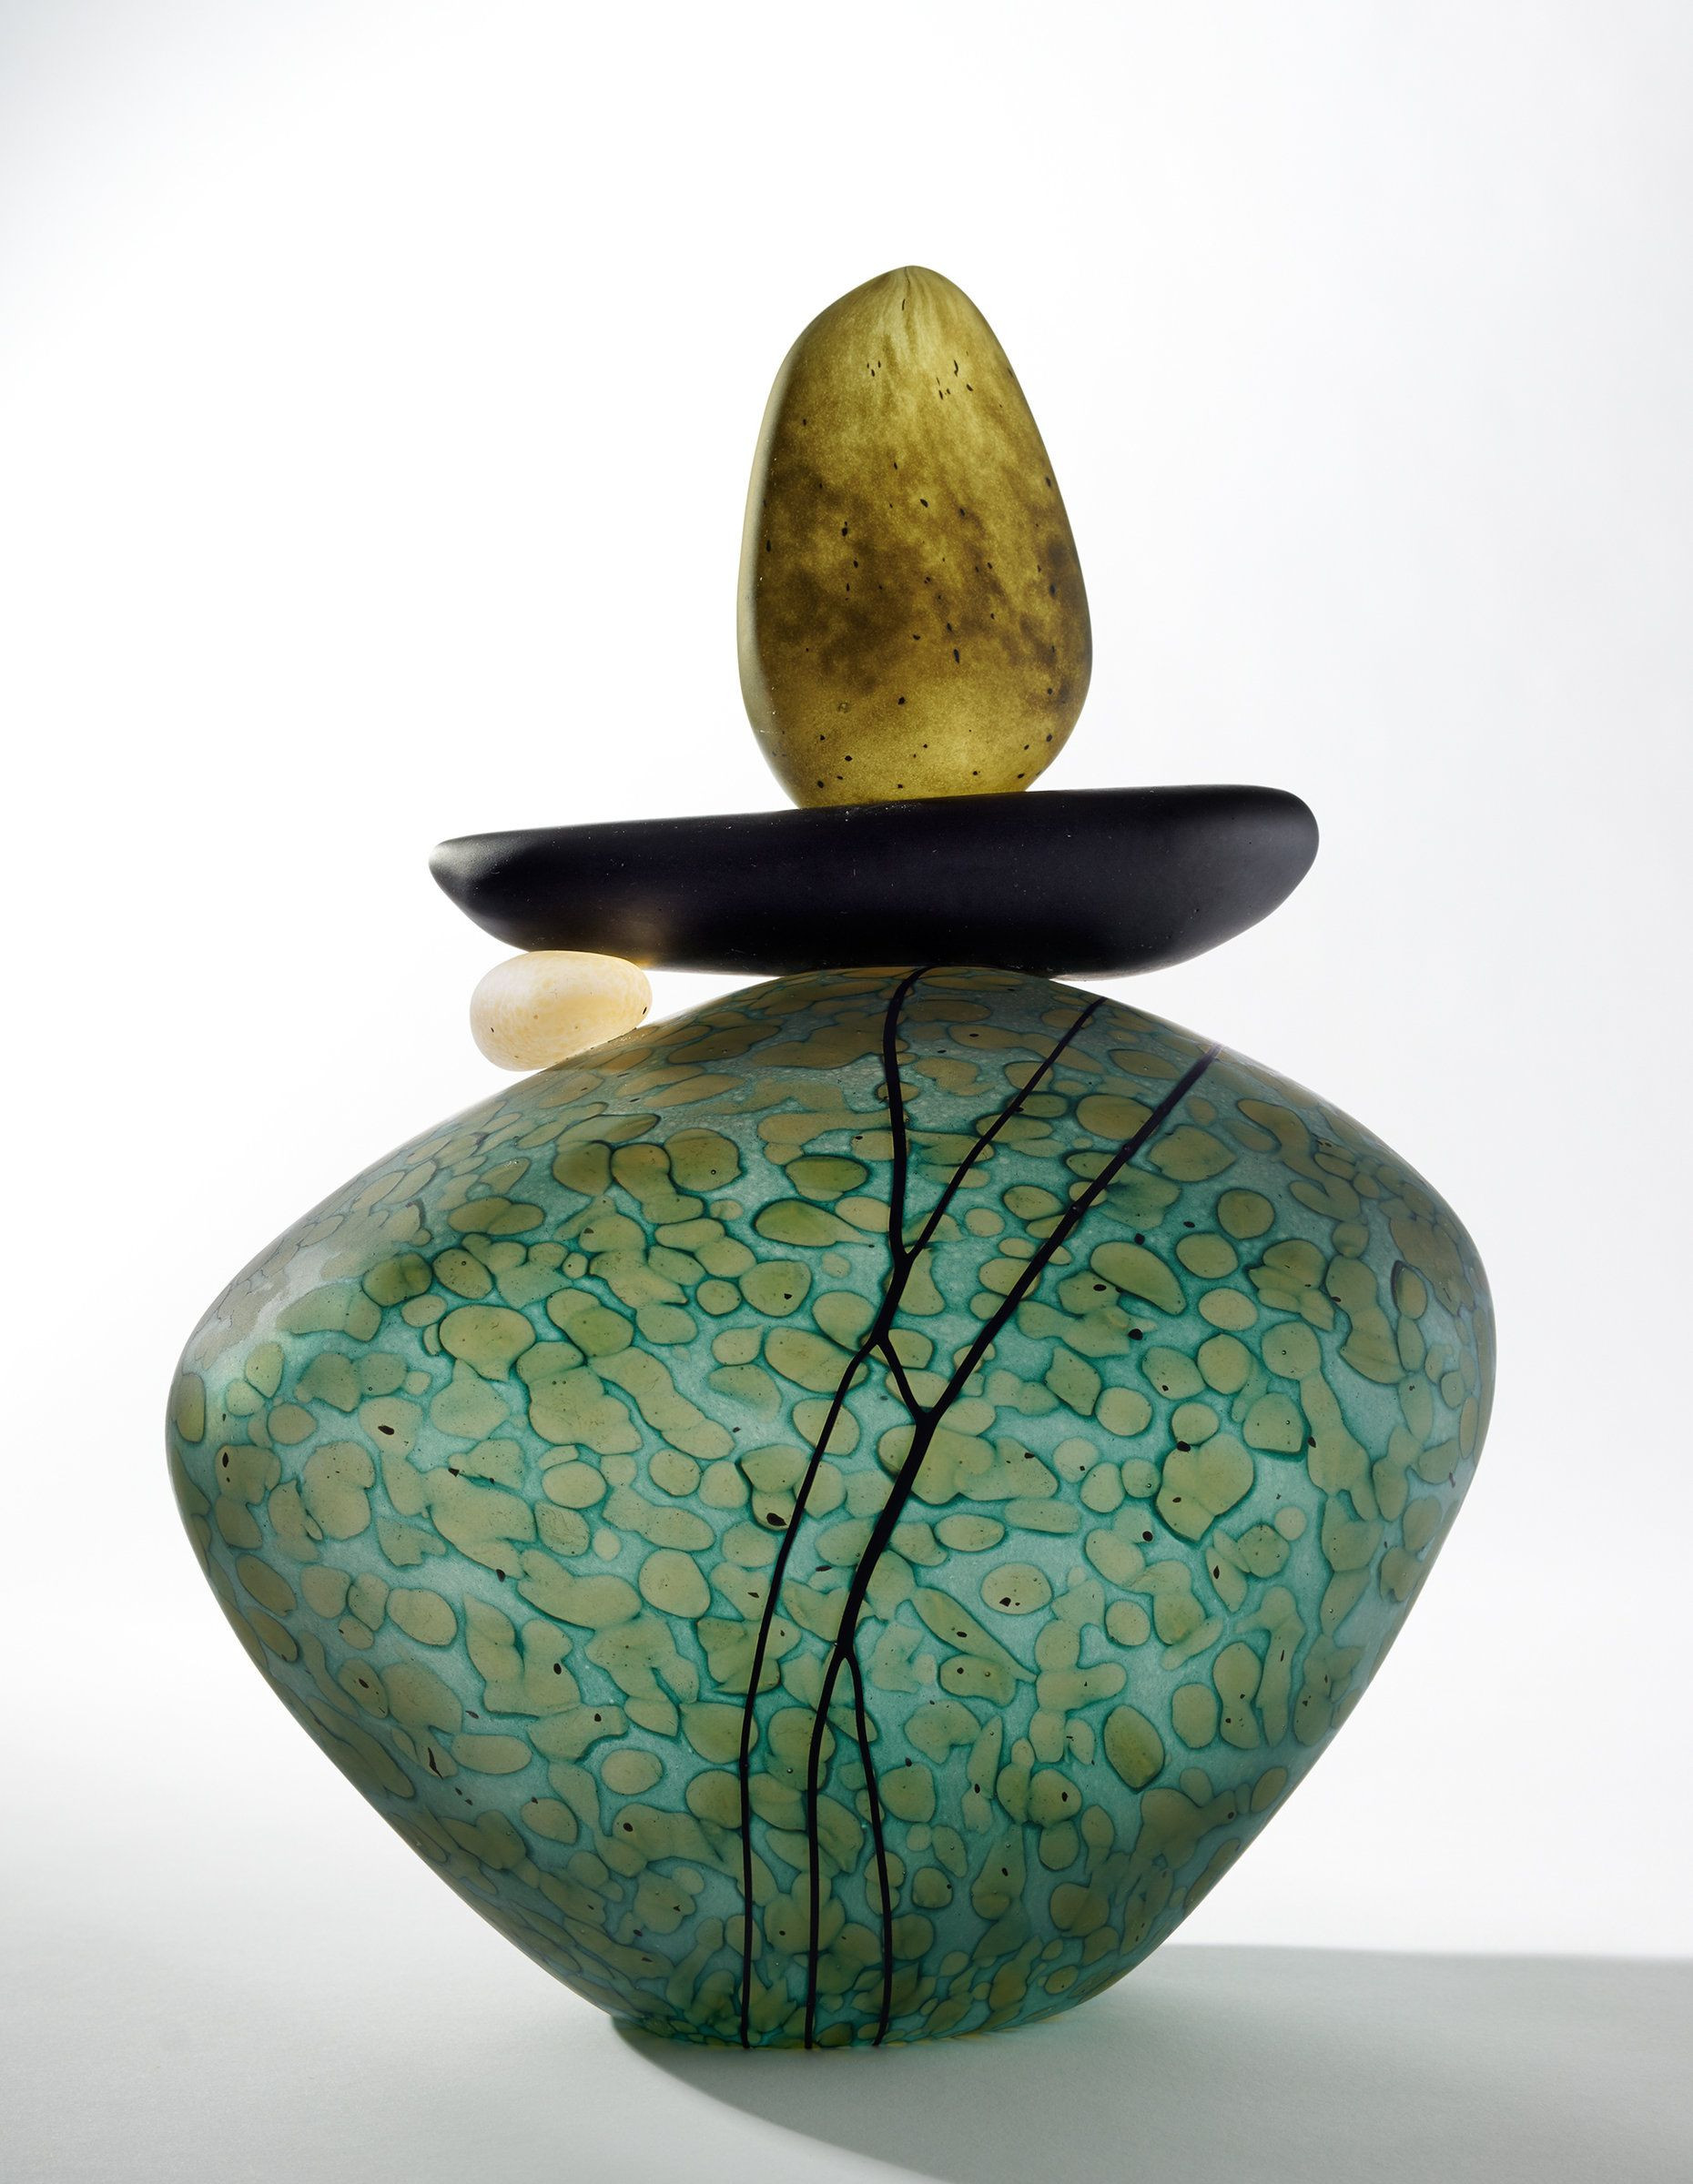 teal ceramic vase of cairn rock totem in teal by melanie guernsey leppla art glass for cairn rock totem in teal by melanie guernsey leppla art glass sculpture artful home